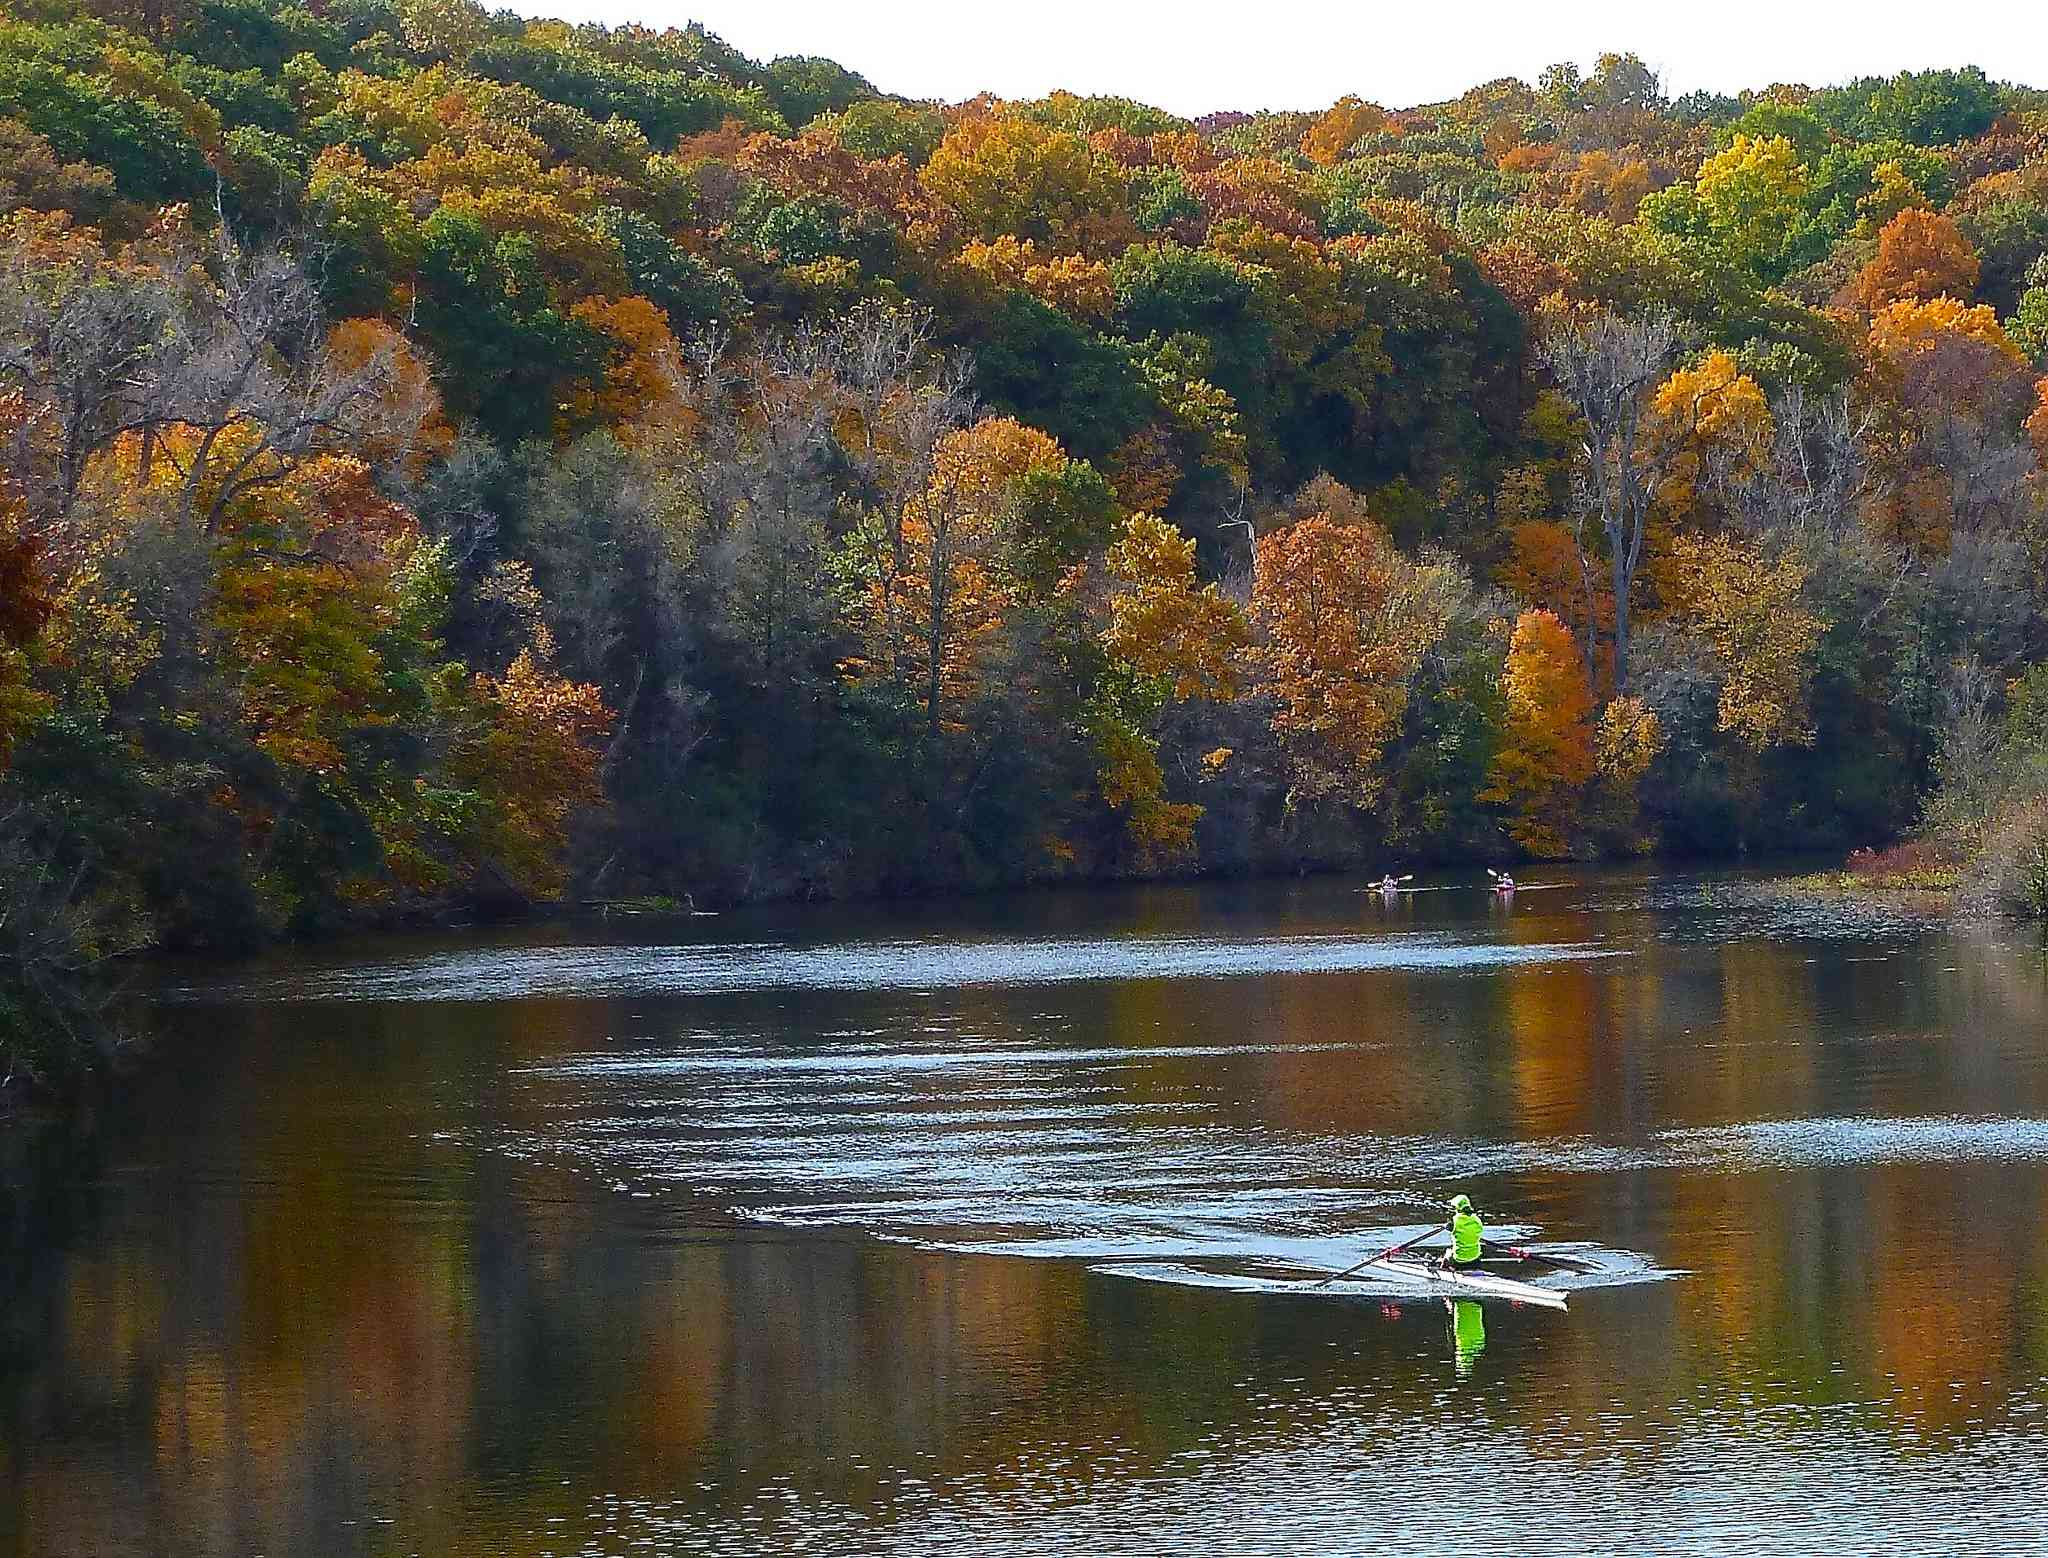 Autumnal trees behind the peaceful Huron River Water Trail in Michigan